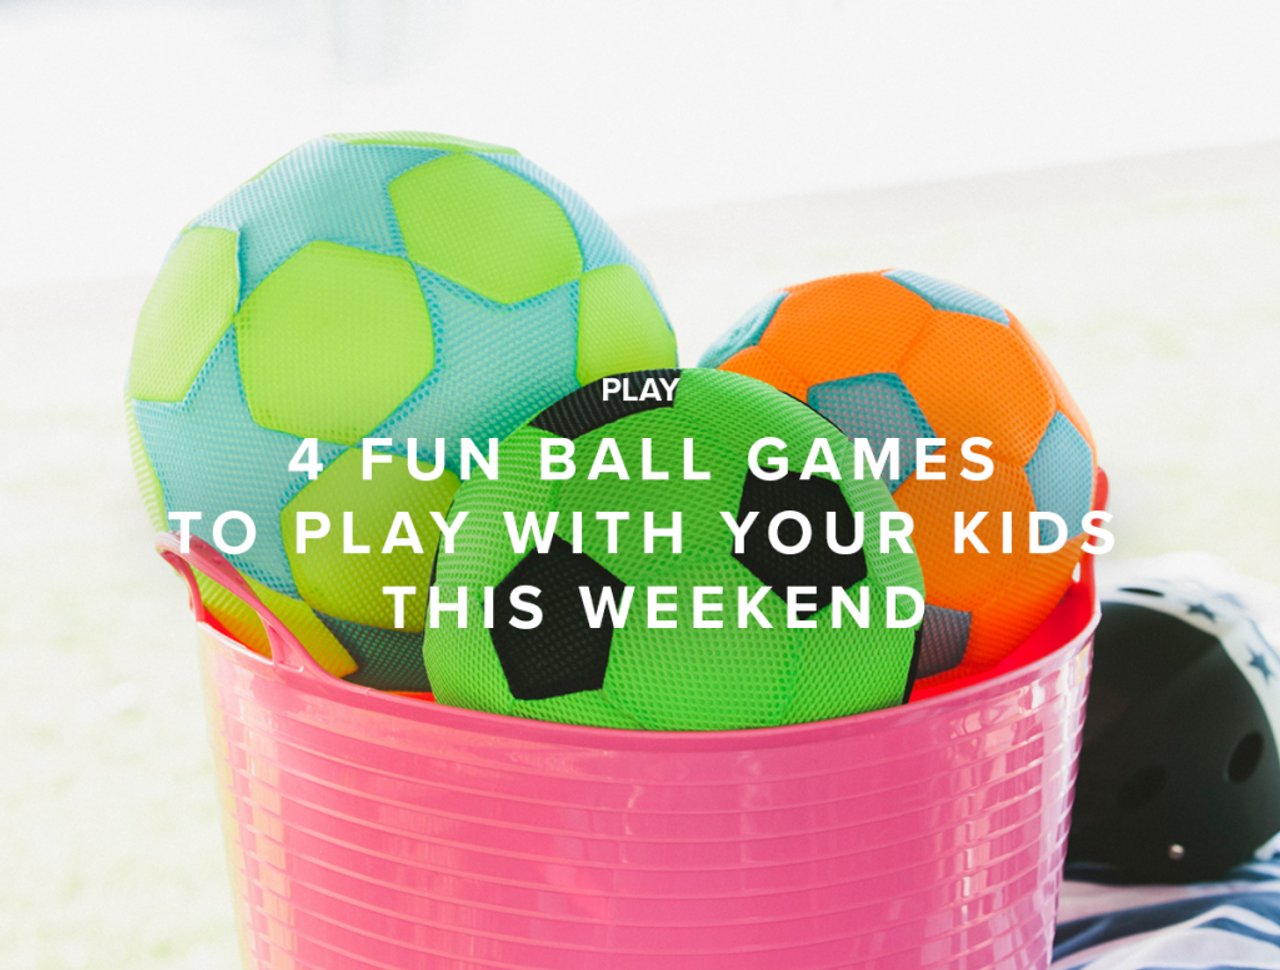 4 Fun Ball Games to Play with your Kids this Weekend